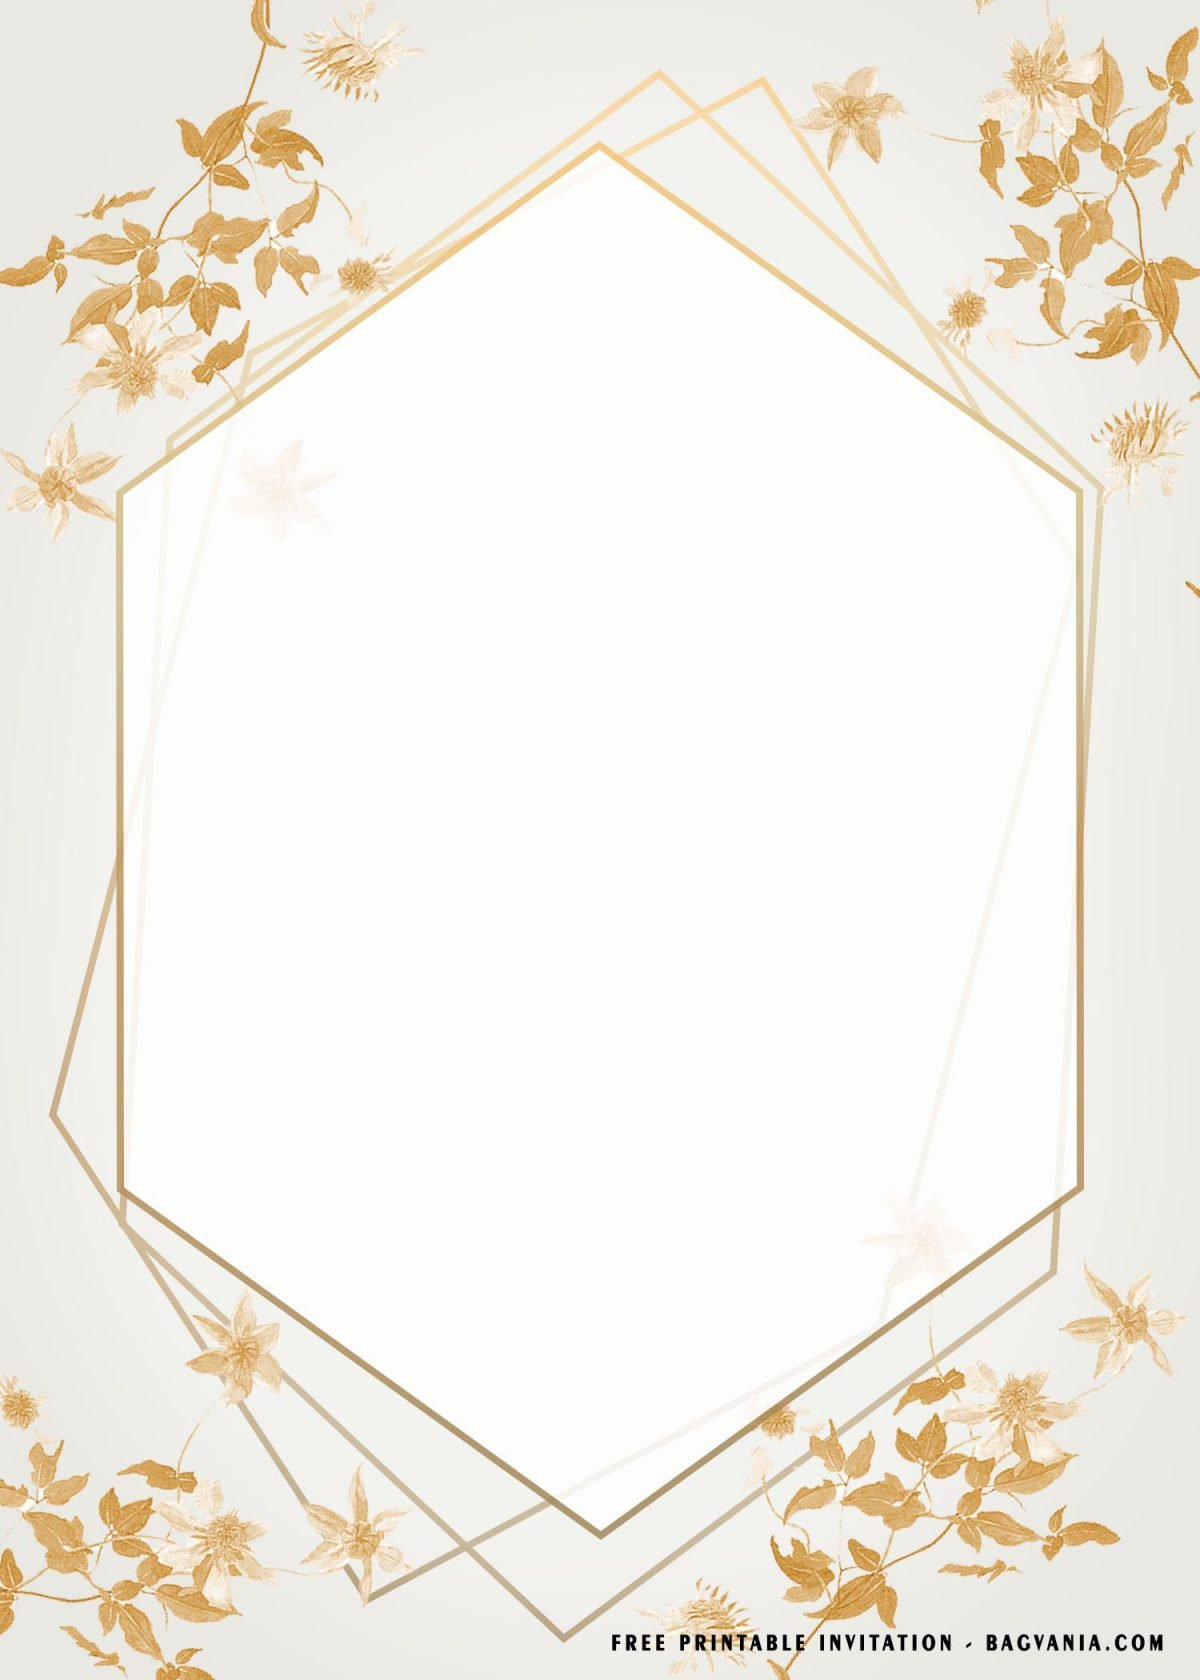 Free Printable Glitter Floral Baby Shower Invitation Templates With Geometrical Frame Design